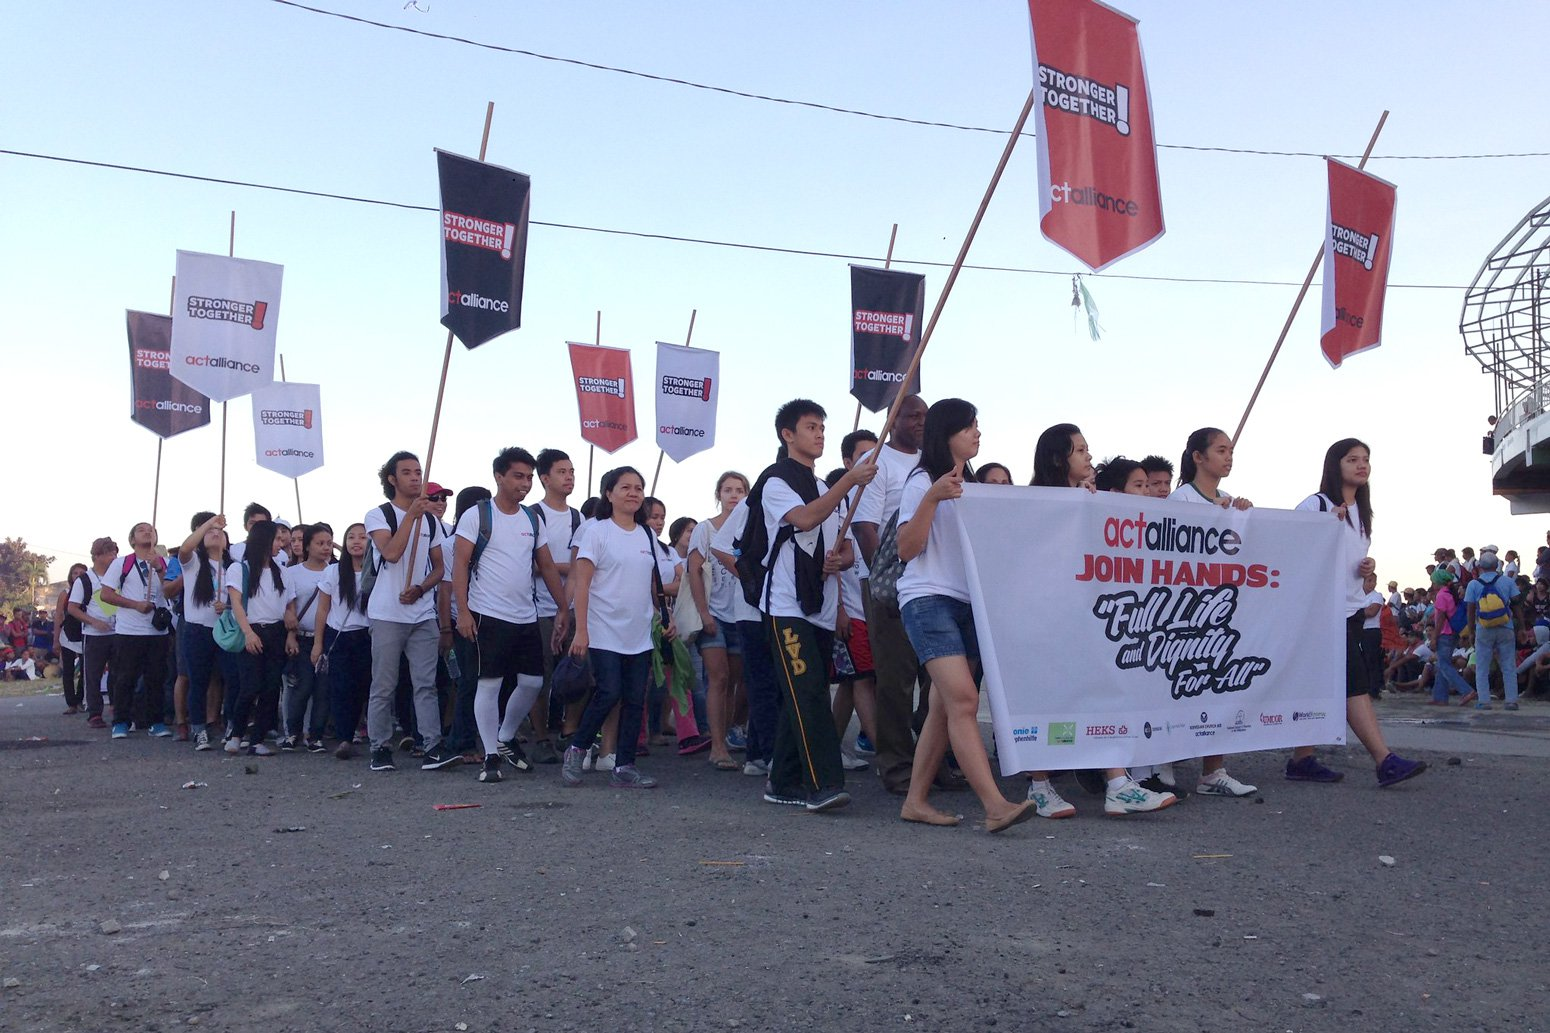 Groups from INGOs, NGOs, and communities rallied to remember the deceased and demand accountability from the duty bearers on the 1st anniversary of Typhoon Haiyan, November 2014.